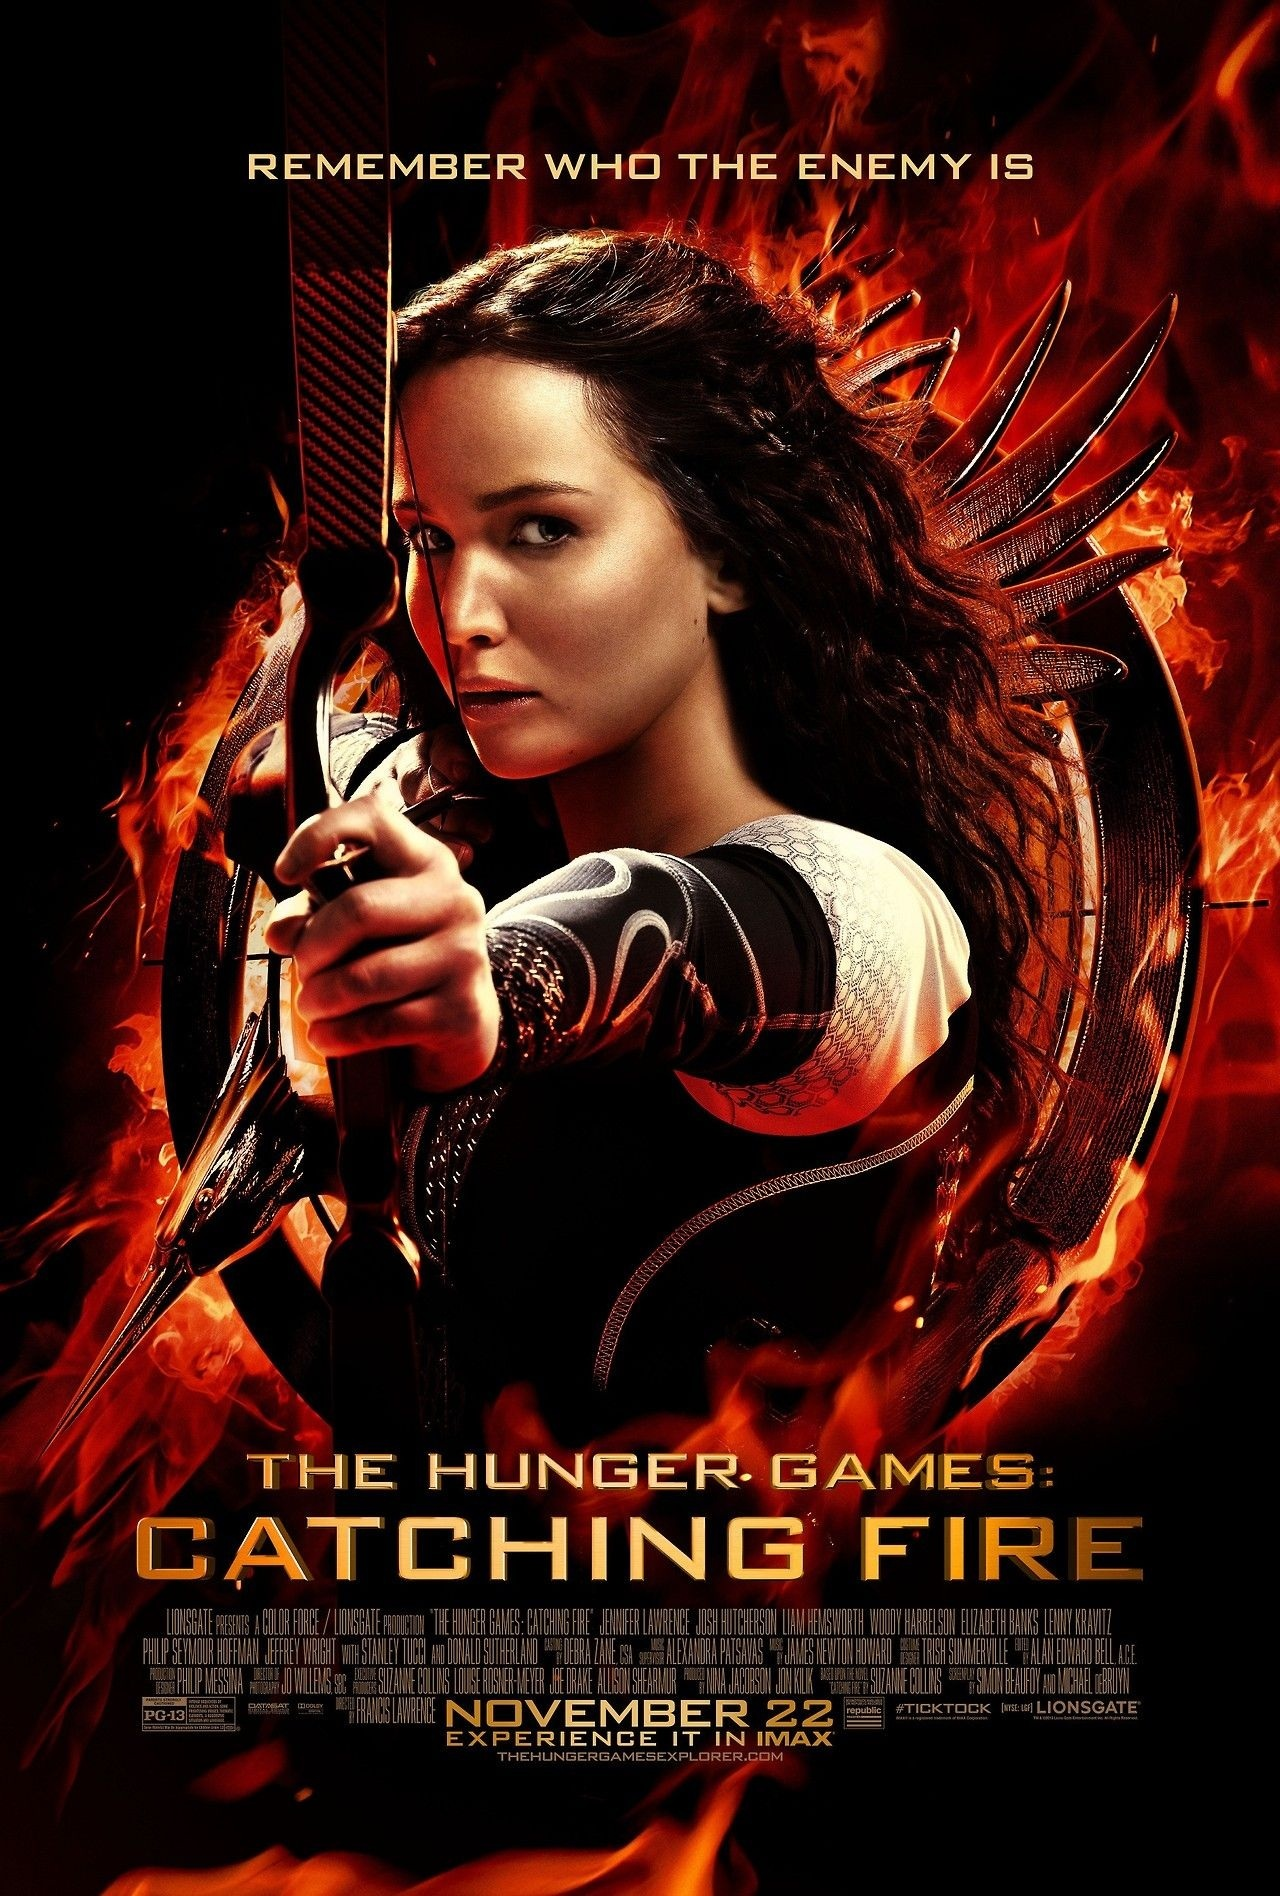 the-hunger-games-catching-fire-movie-poster-the-hunger-games-catching-fire-poster-683687434